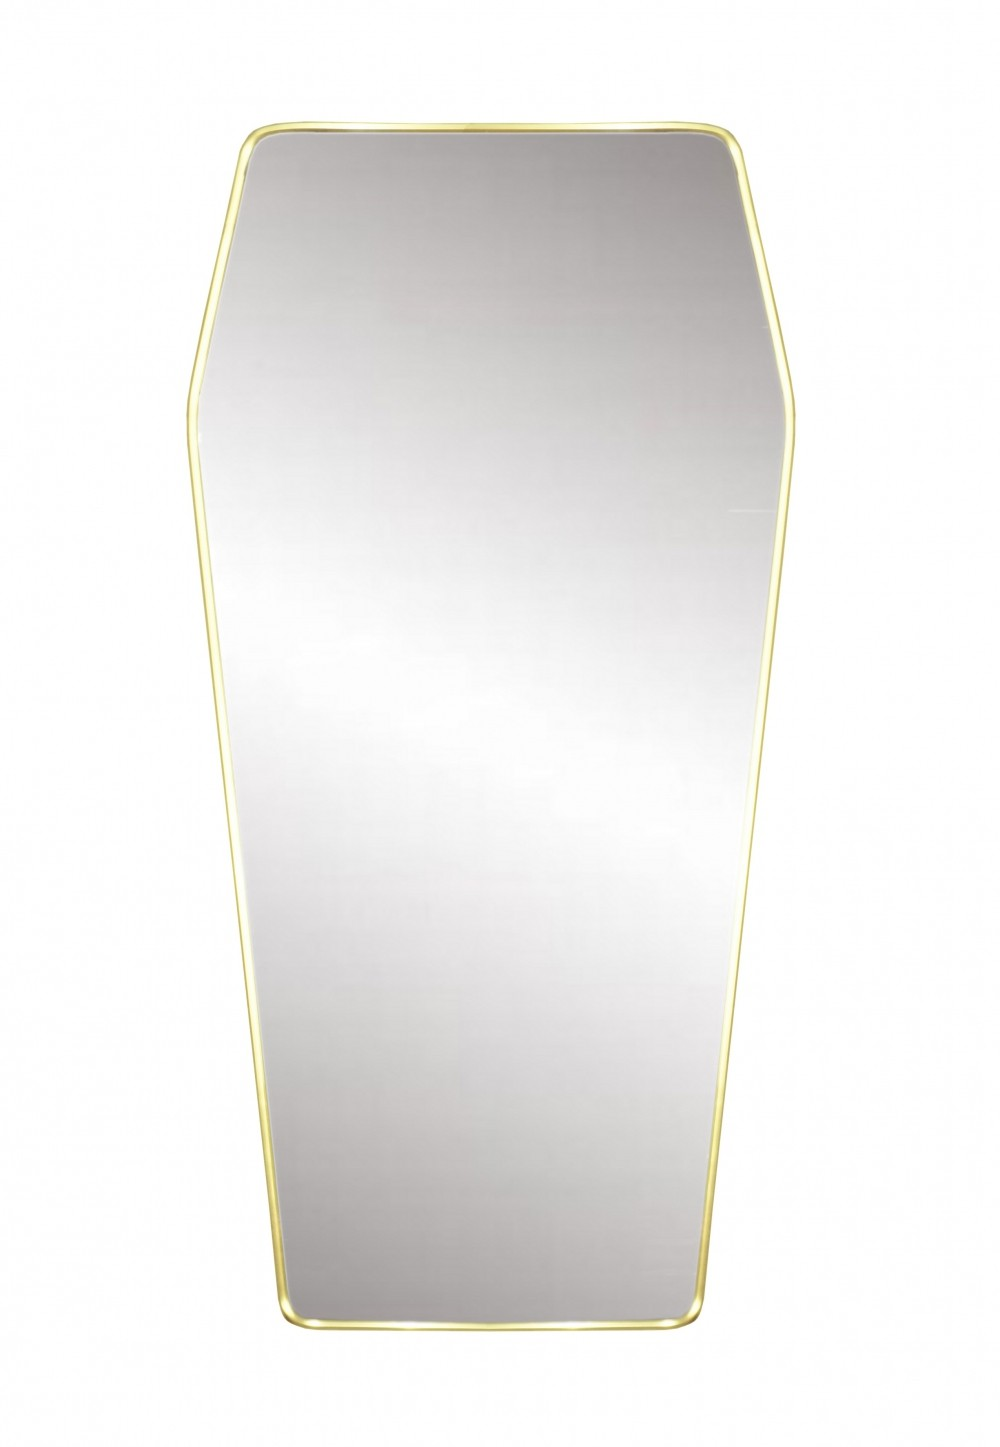 1950s Design Retroviseur Brass Mirror